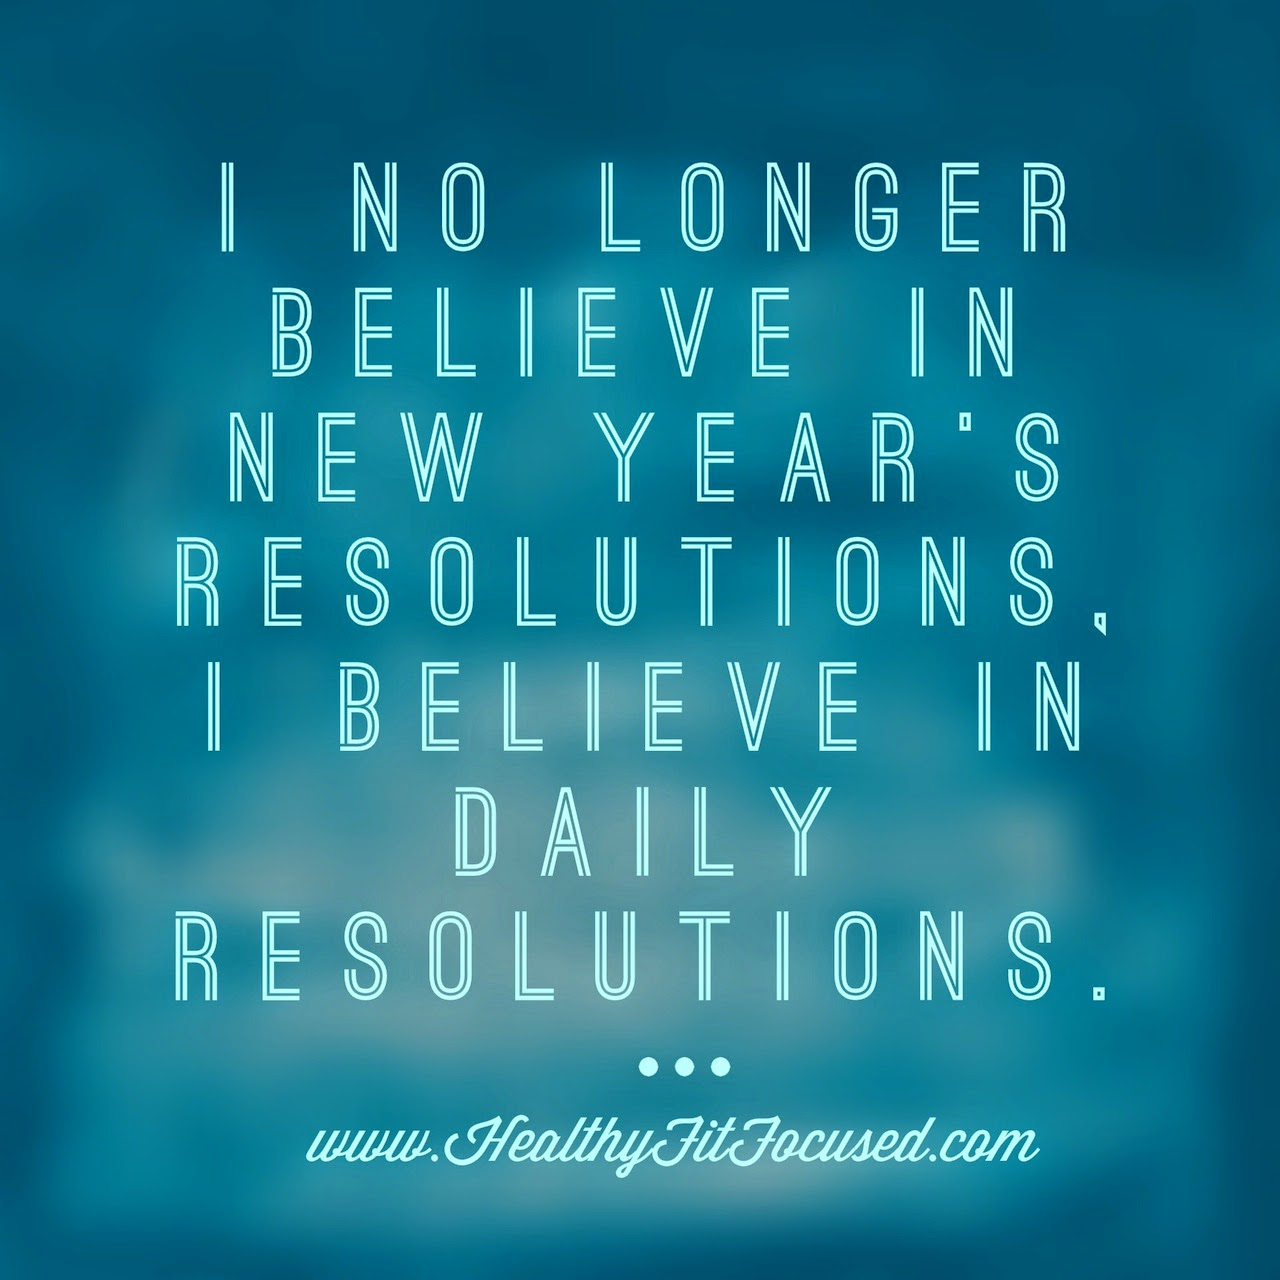 Happy New Year, 2015 Promotions that will start your year off with a bang!  Get healthy, lose weight, get in shape.  www.HealthyFitFocused.com